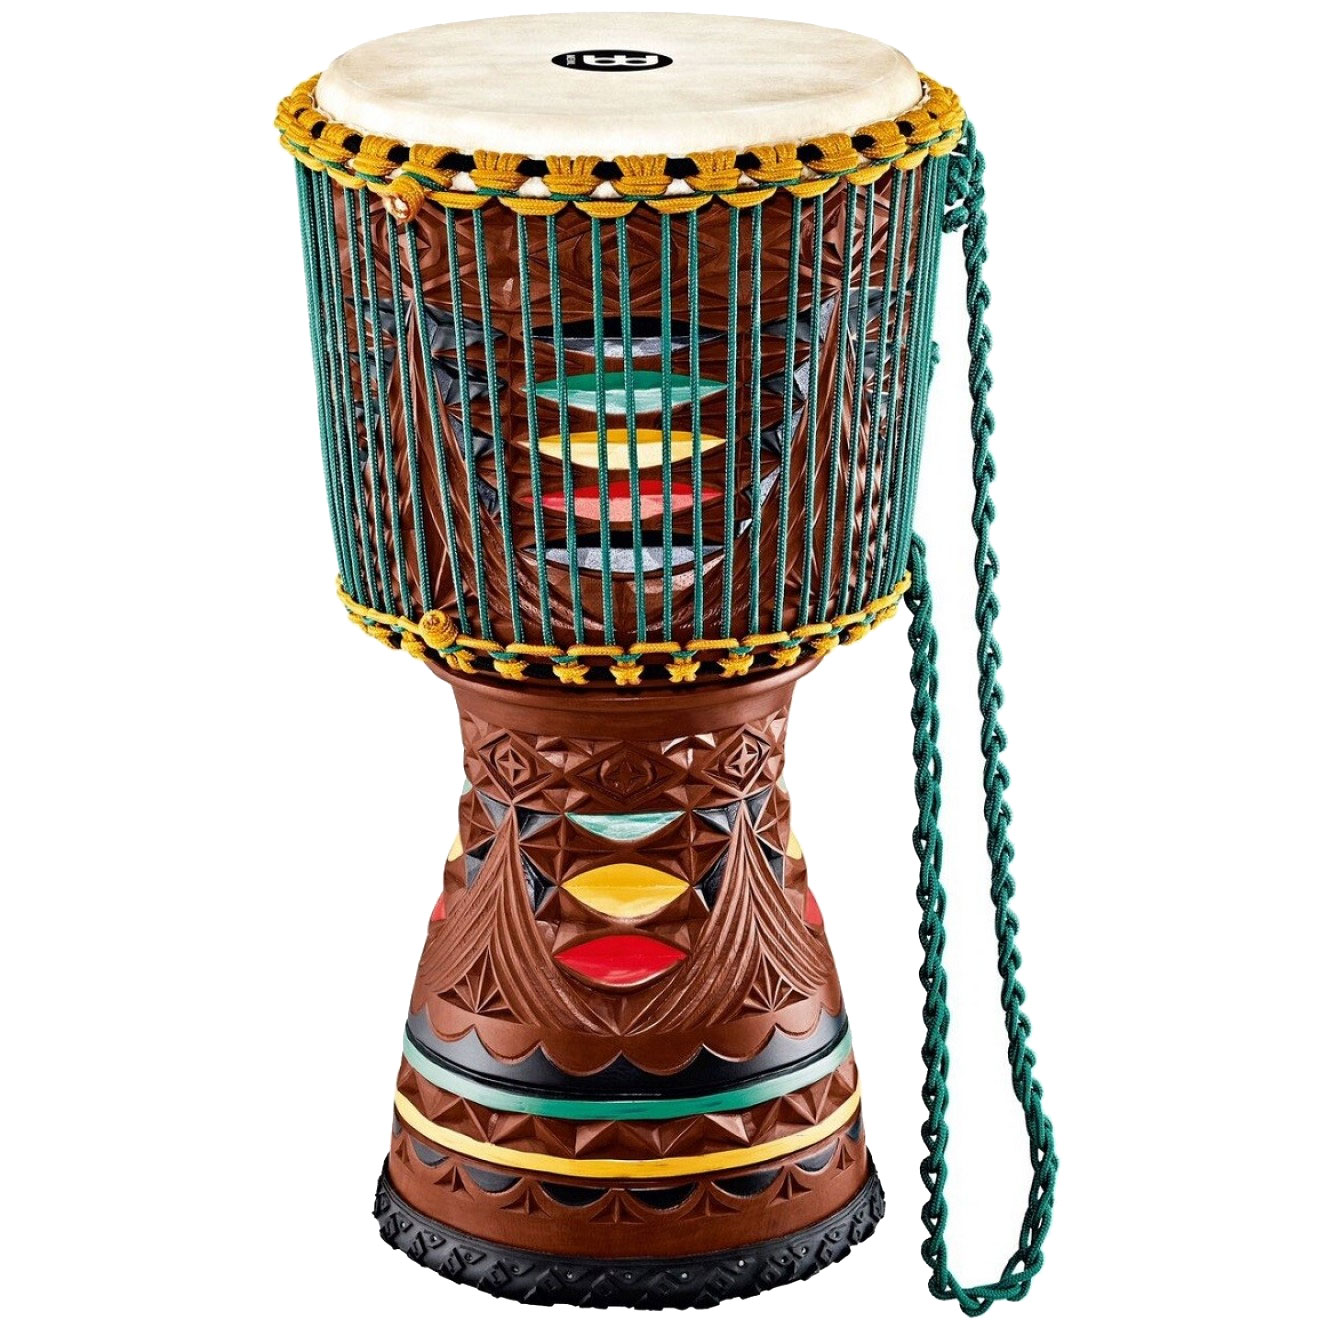 "Meinl 12"" Artisan Edition Djembe with Colored Ornamental Carving"